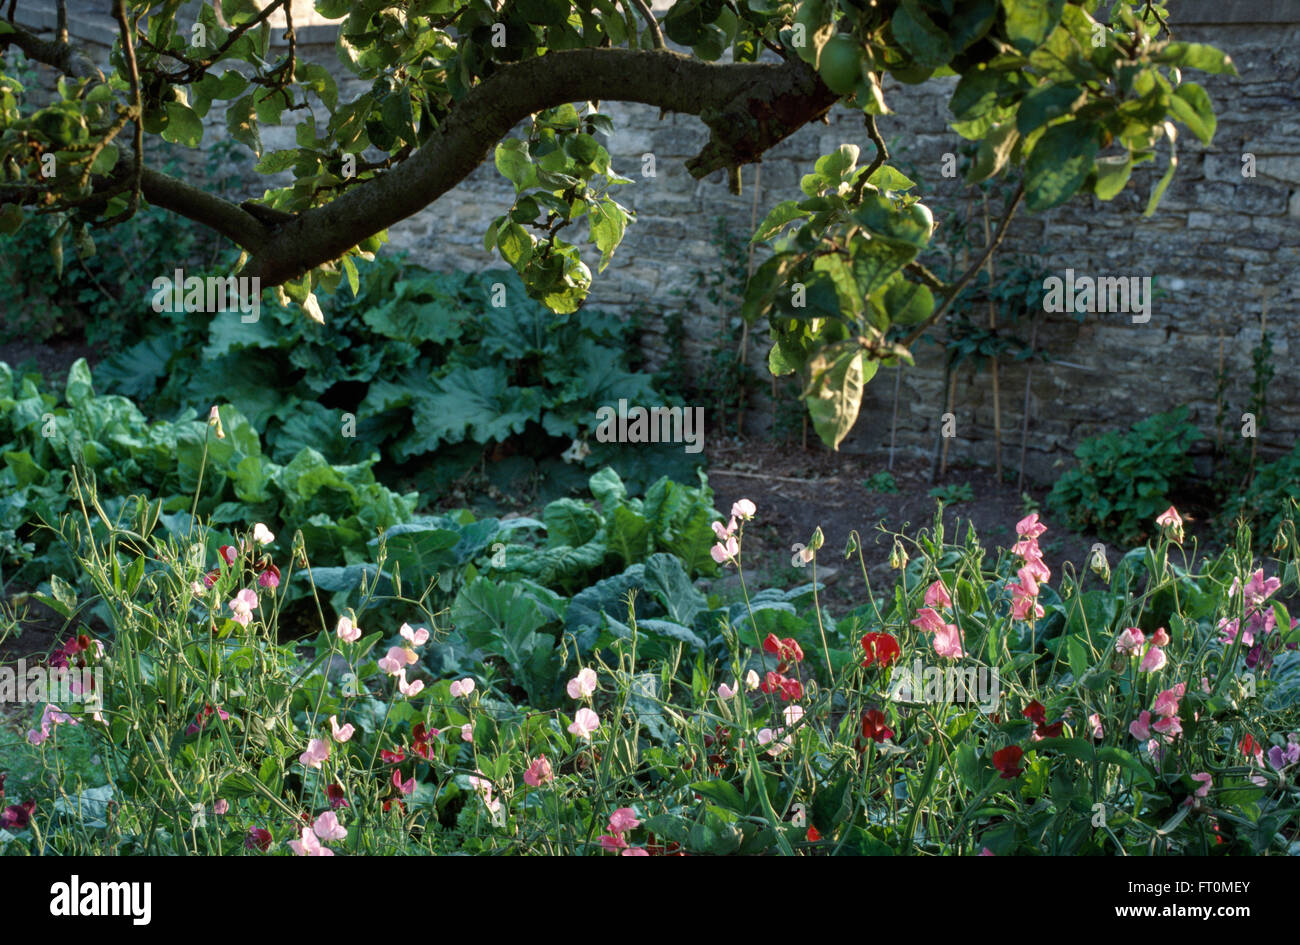 Country vegetable gardens - Sweet Peas Growing Below An Old Fruit Tree In A Country Vegetable Garden Stock Image